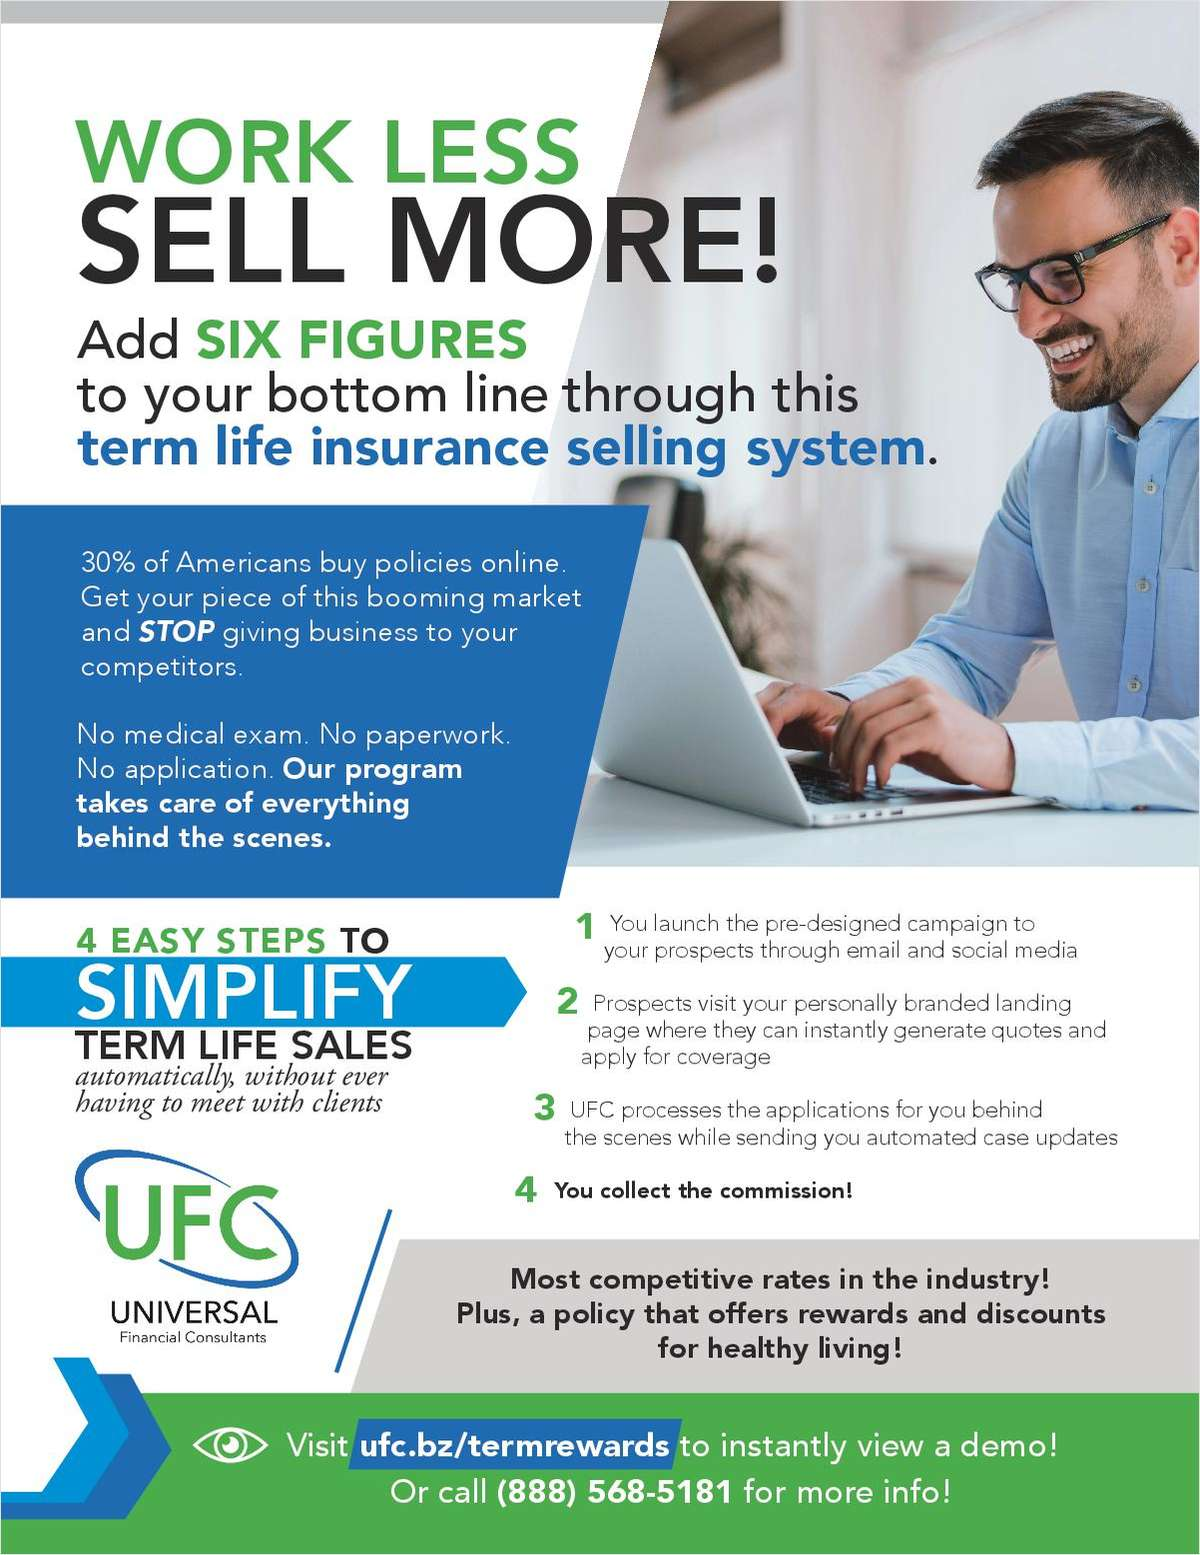 4 Easy Steps to Simplify Term Life Sales